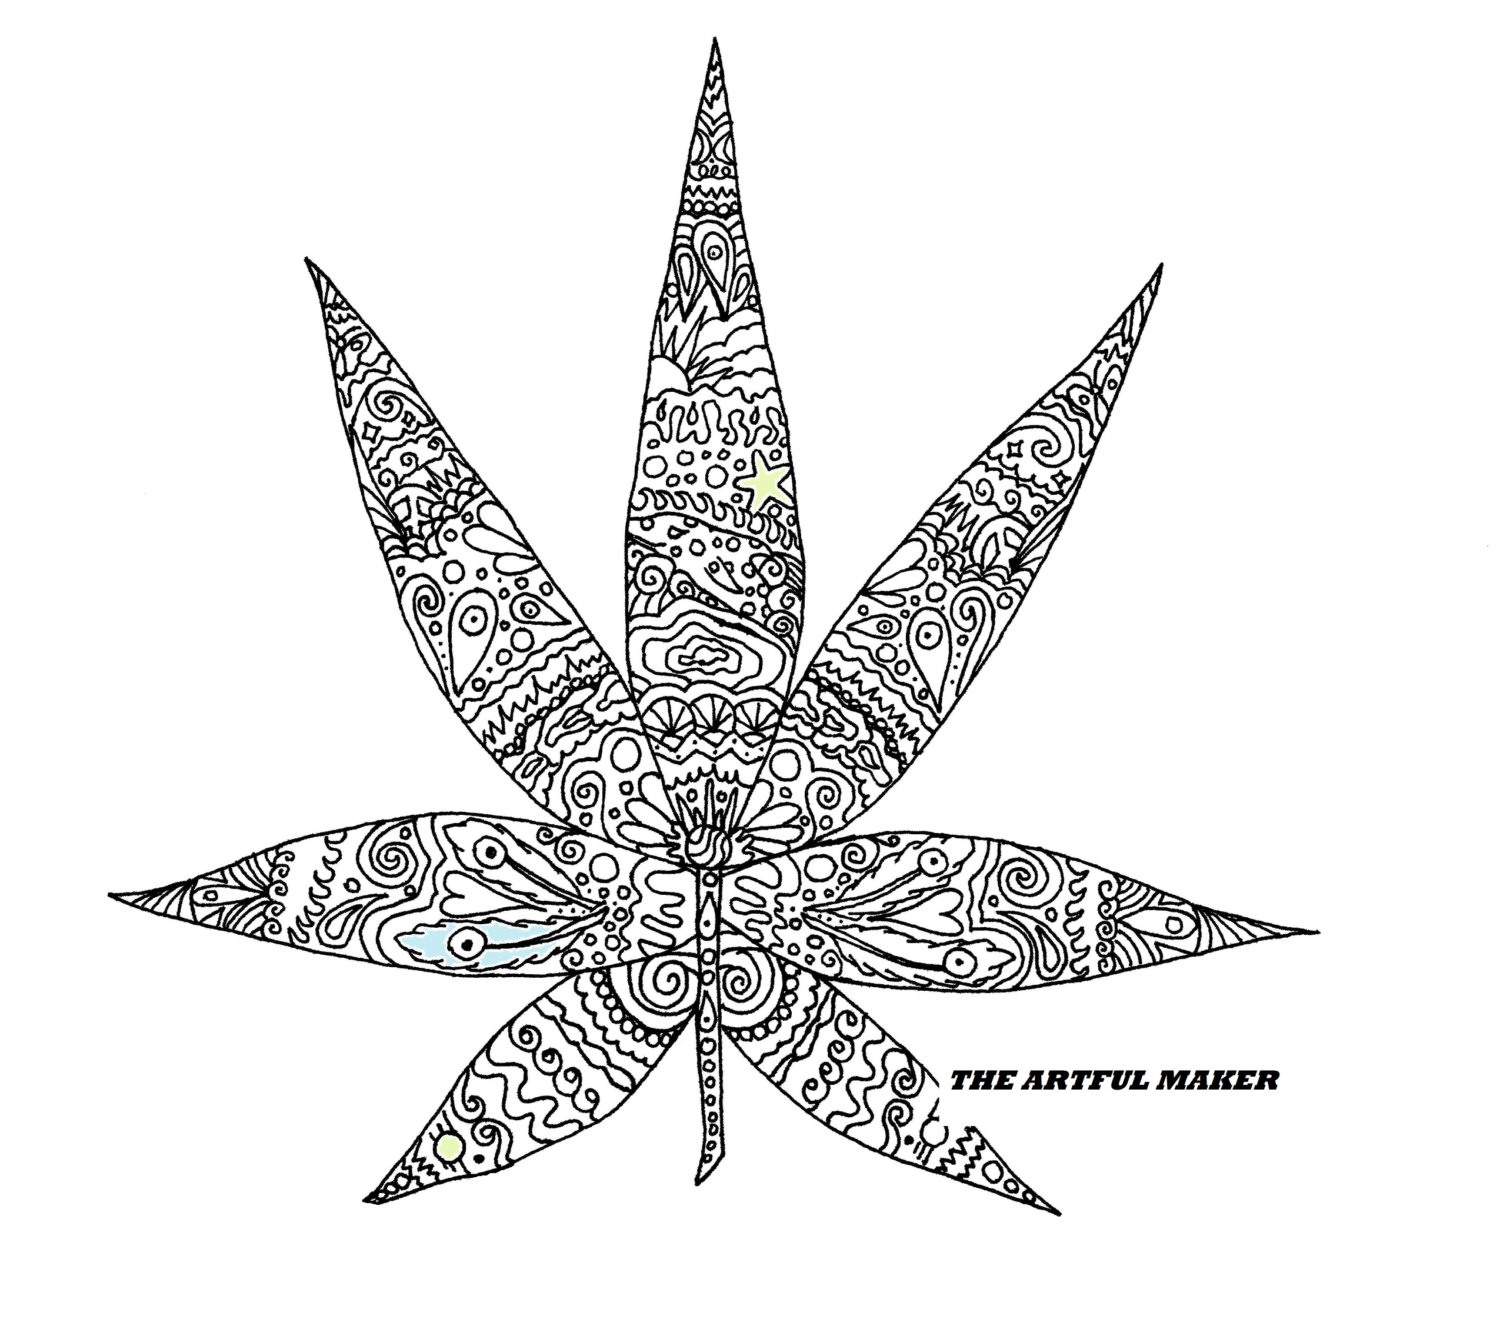 marijuana leaf coloring pages sweet leaf adult coloring page by the artful maker etsy coloring pages marijuana leaf